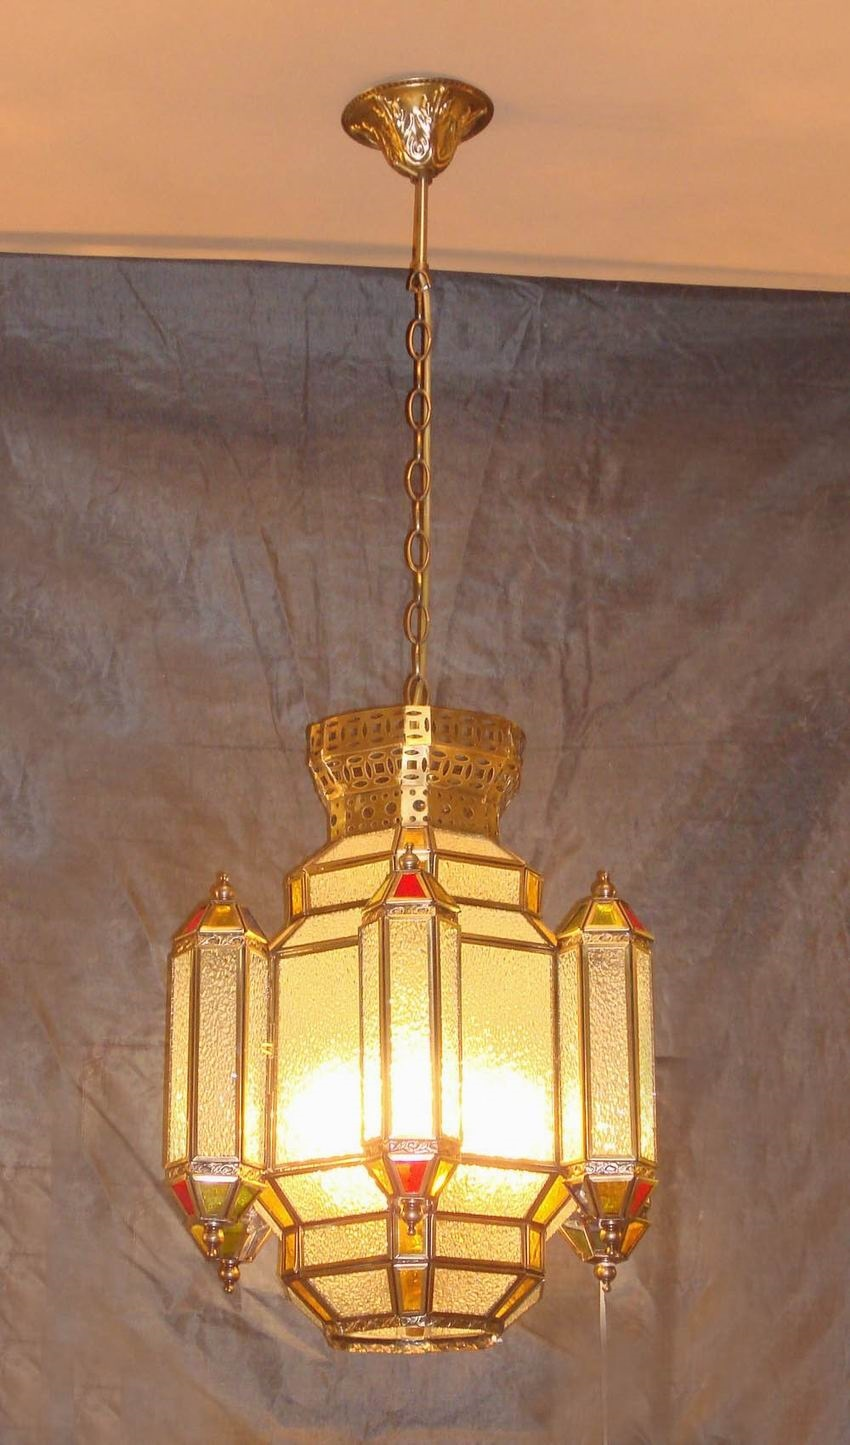 Brass Pendant Lamp with Glass Decorative 18958 Pendant Lighting pictures & photos